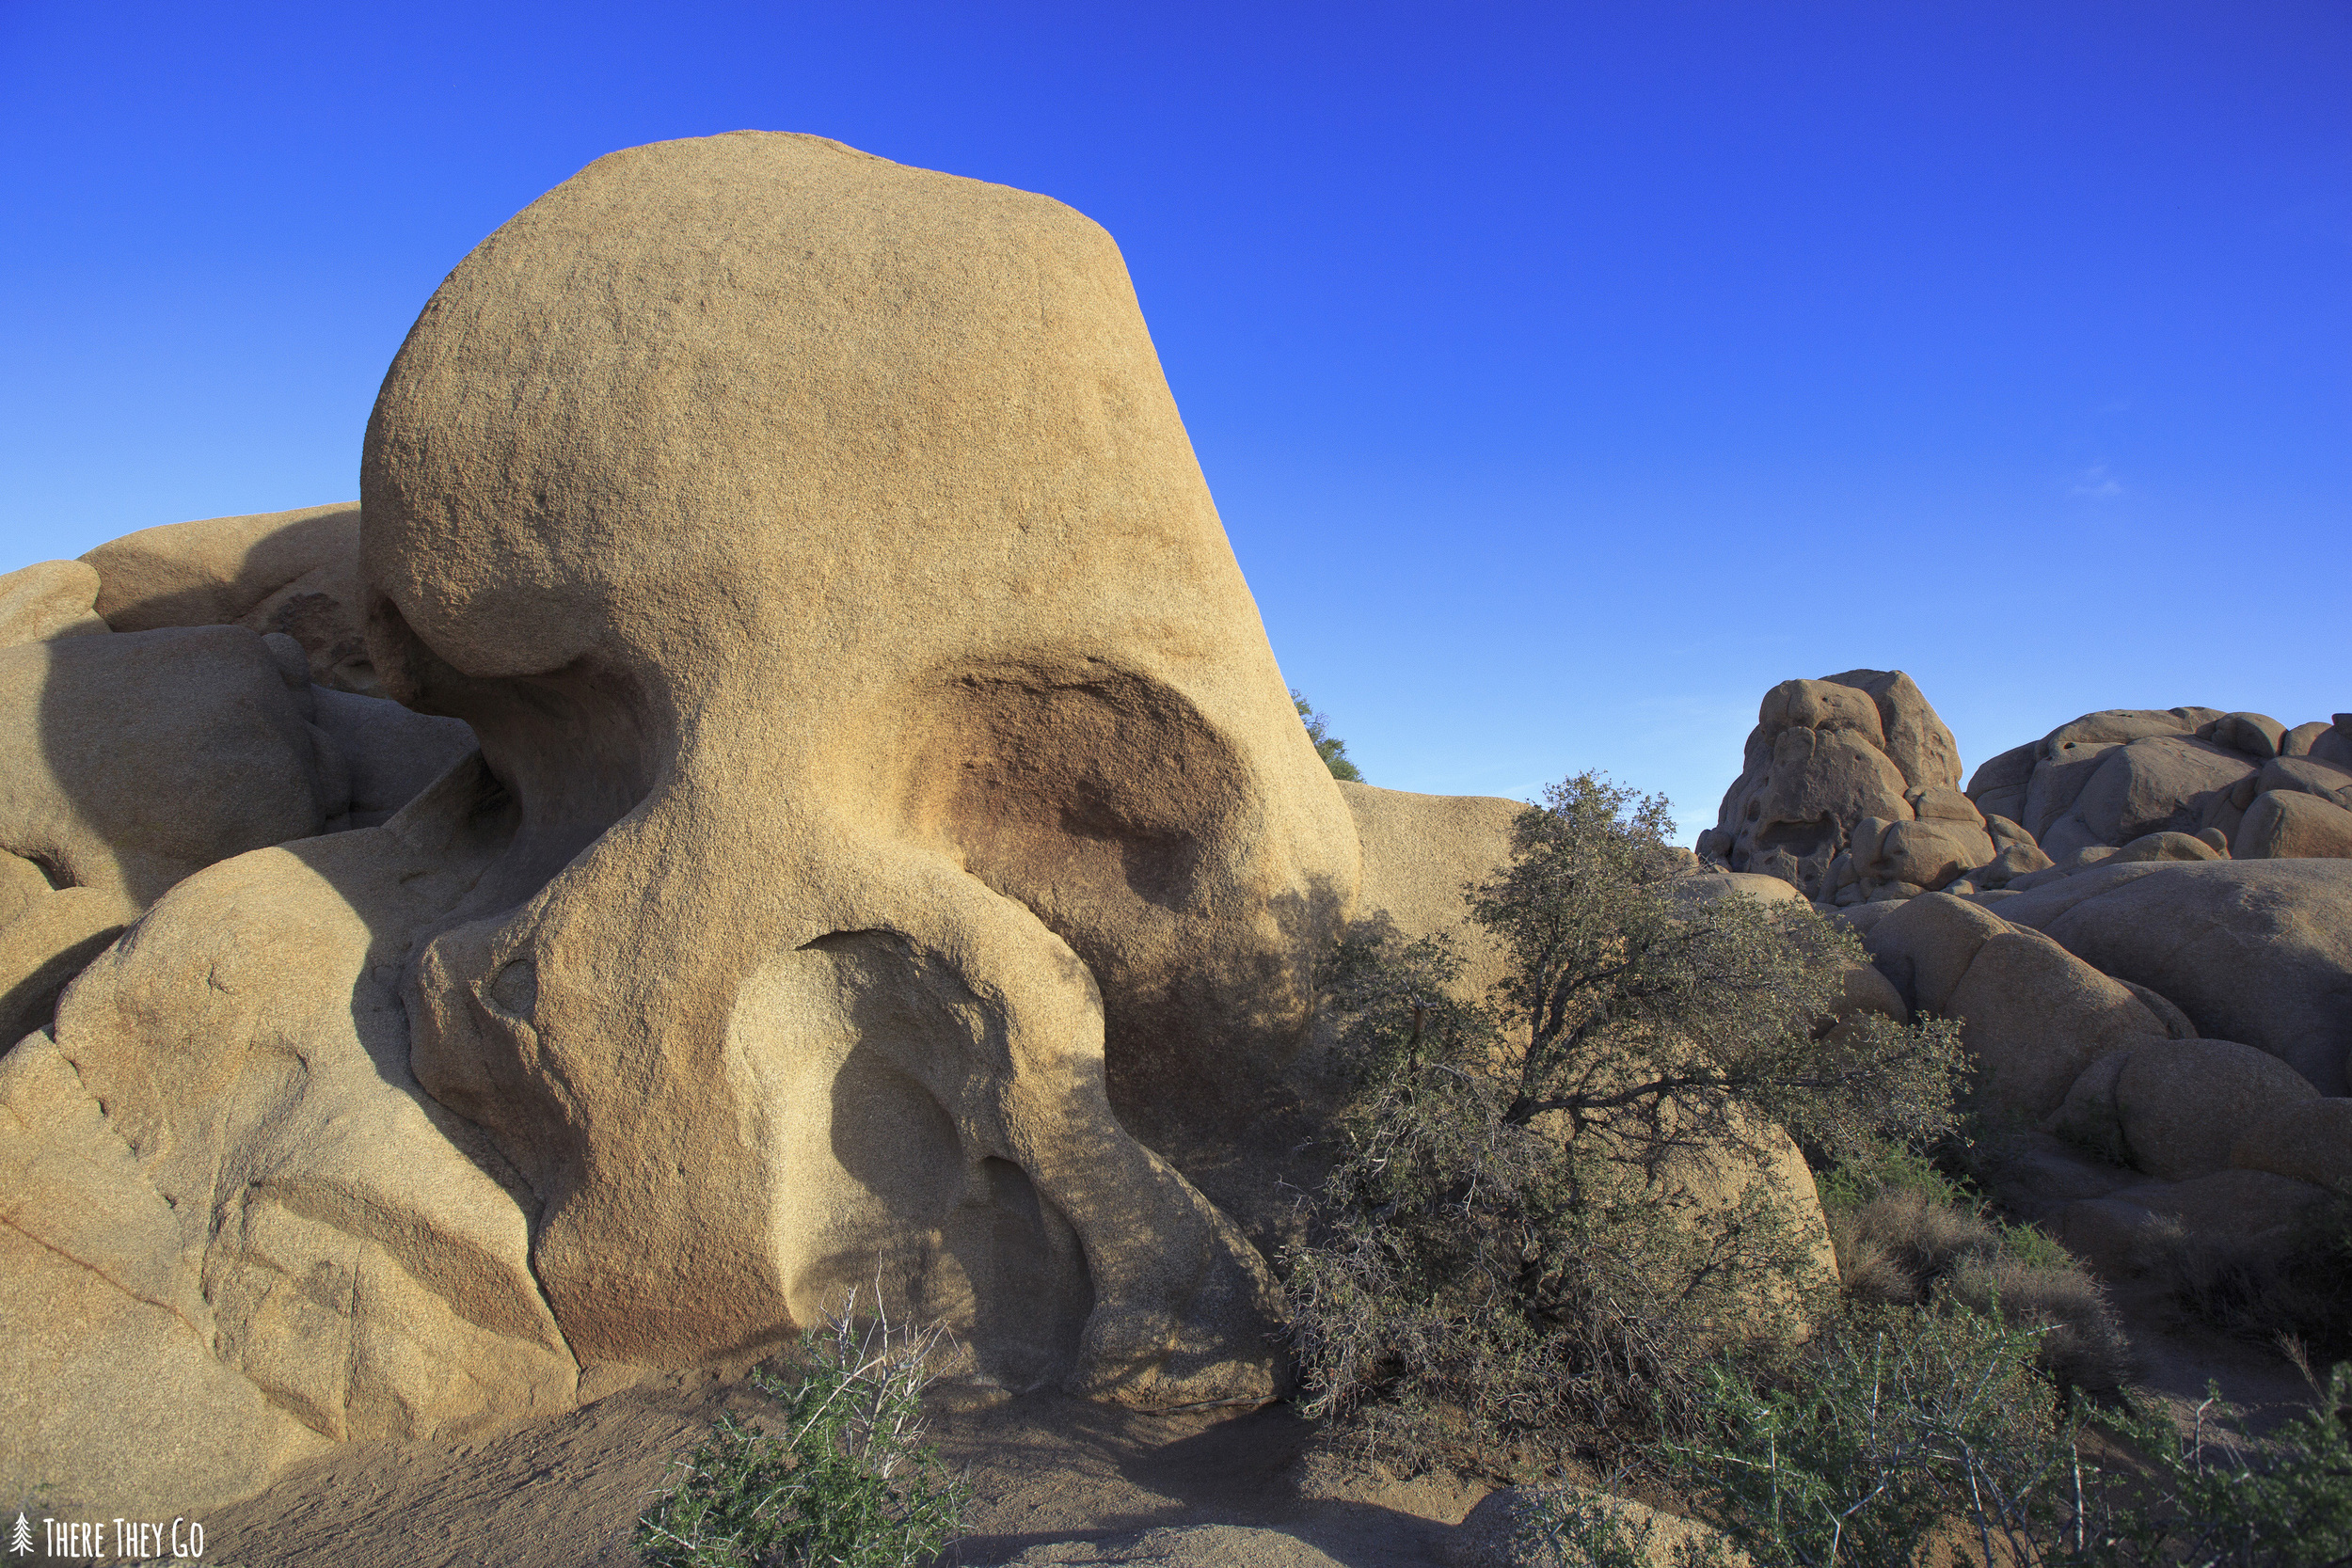 Skull rock, a popular destination in the park is located along the main east-west park road.  Its clearly visible from the road with posted signs and more than likely tourists packed along the side of the street.  Photo tip: Waiting until about 1 1/2 hours before sunset offers a very soft, warm light hitting the rock.